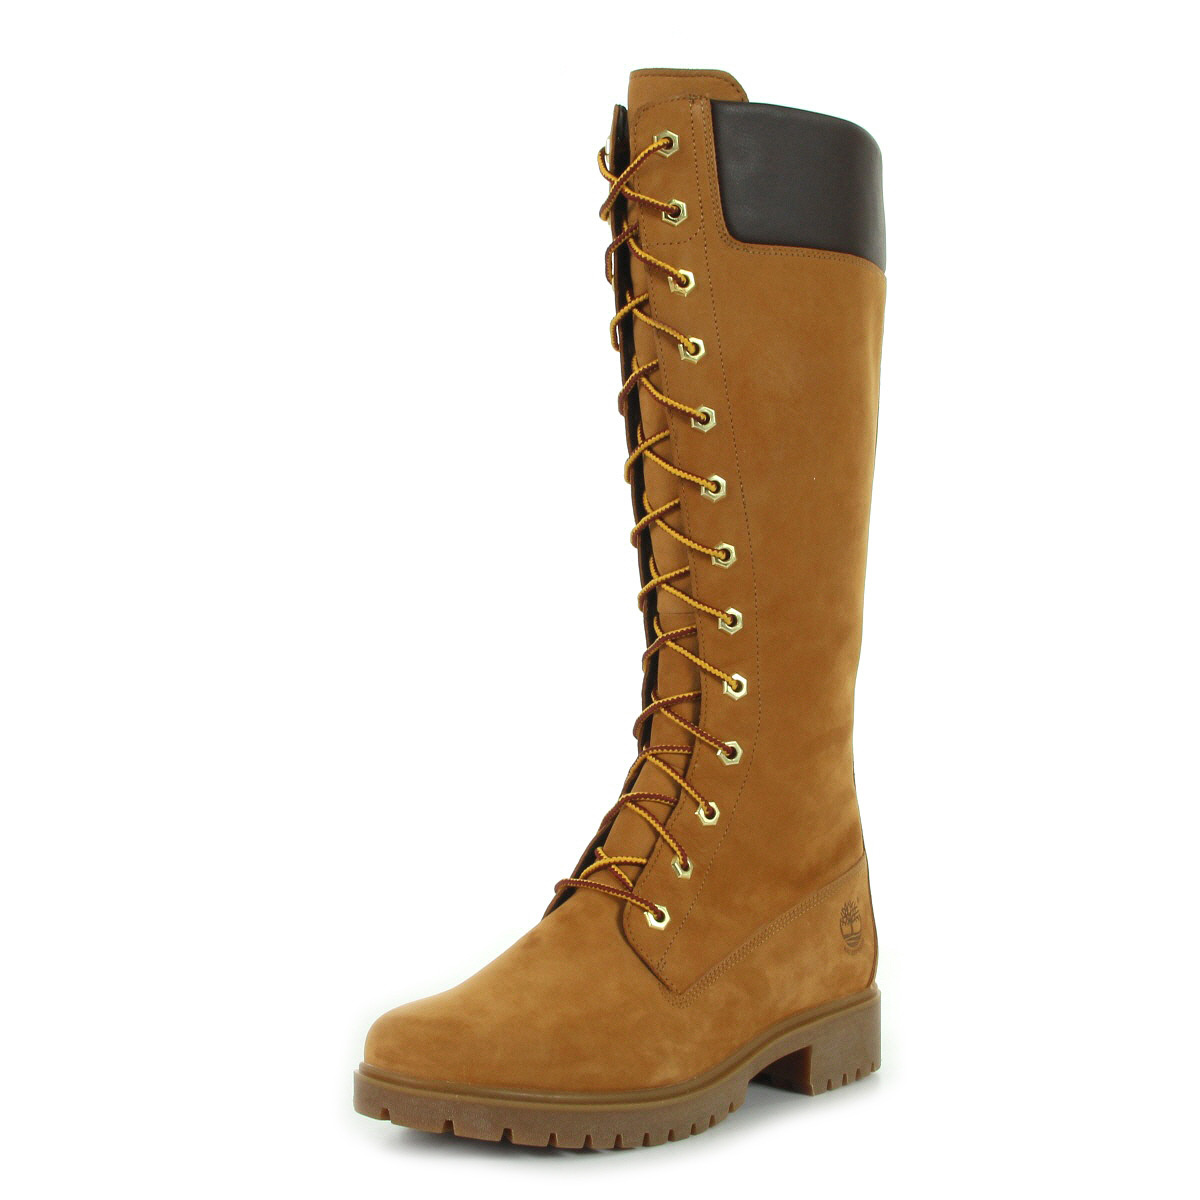 bottes timberland femme auth teddy fleece wp whea taille camel cuir lacets ebay. Black Bedroom Furniture Sets. Home Design Ideas